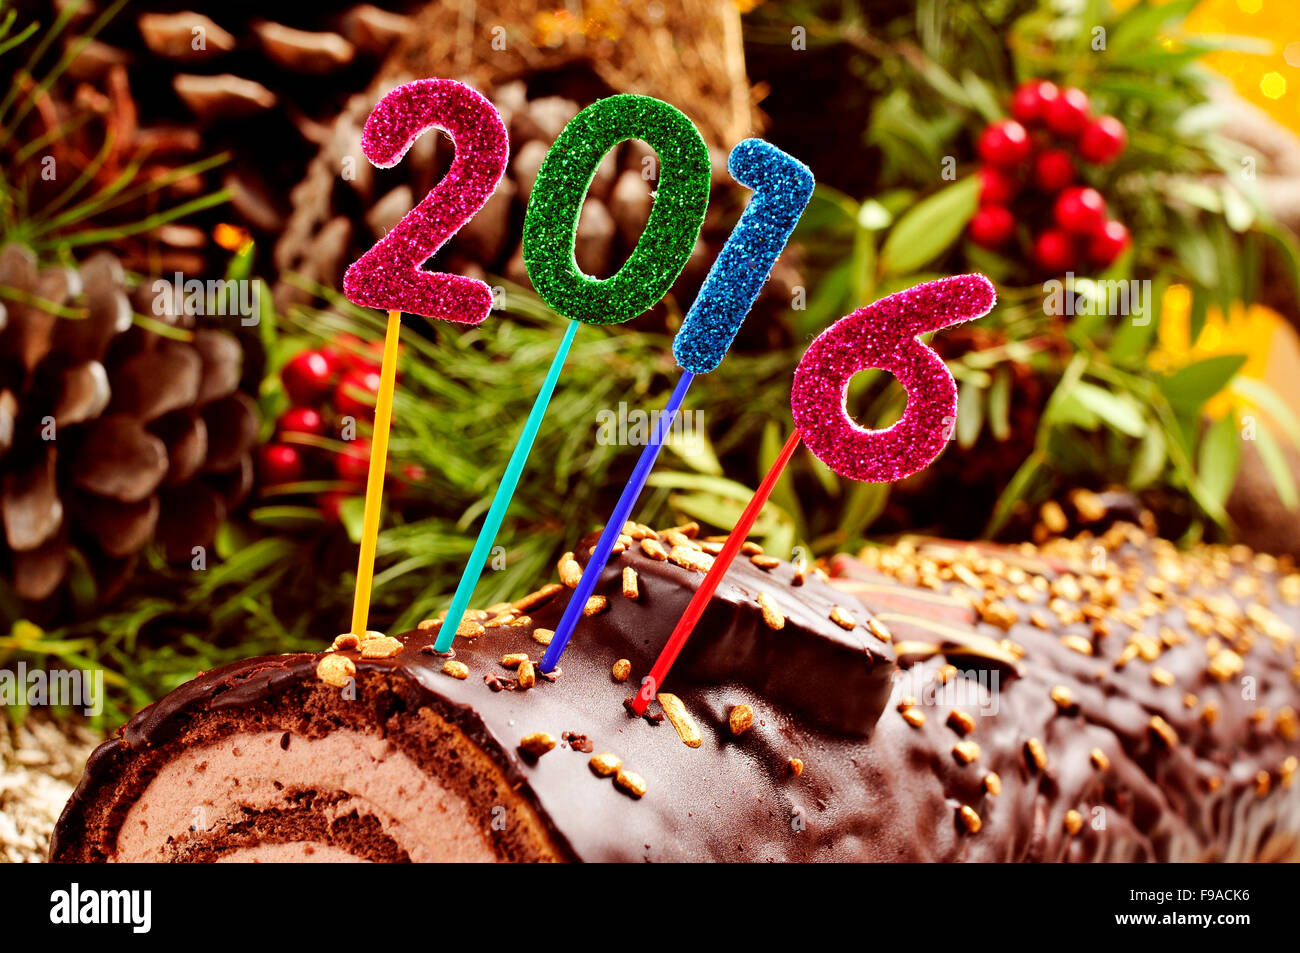 a yule log cake, traditional of christmas time, topped with glittering numbers of different colors forming the number - Stock Image